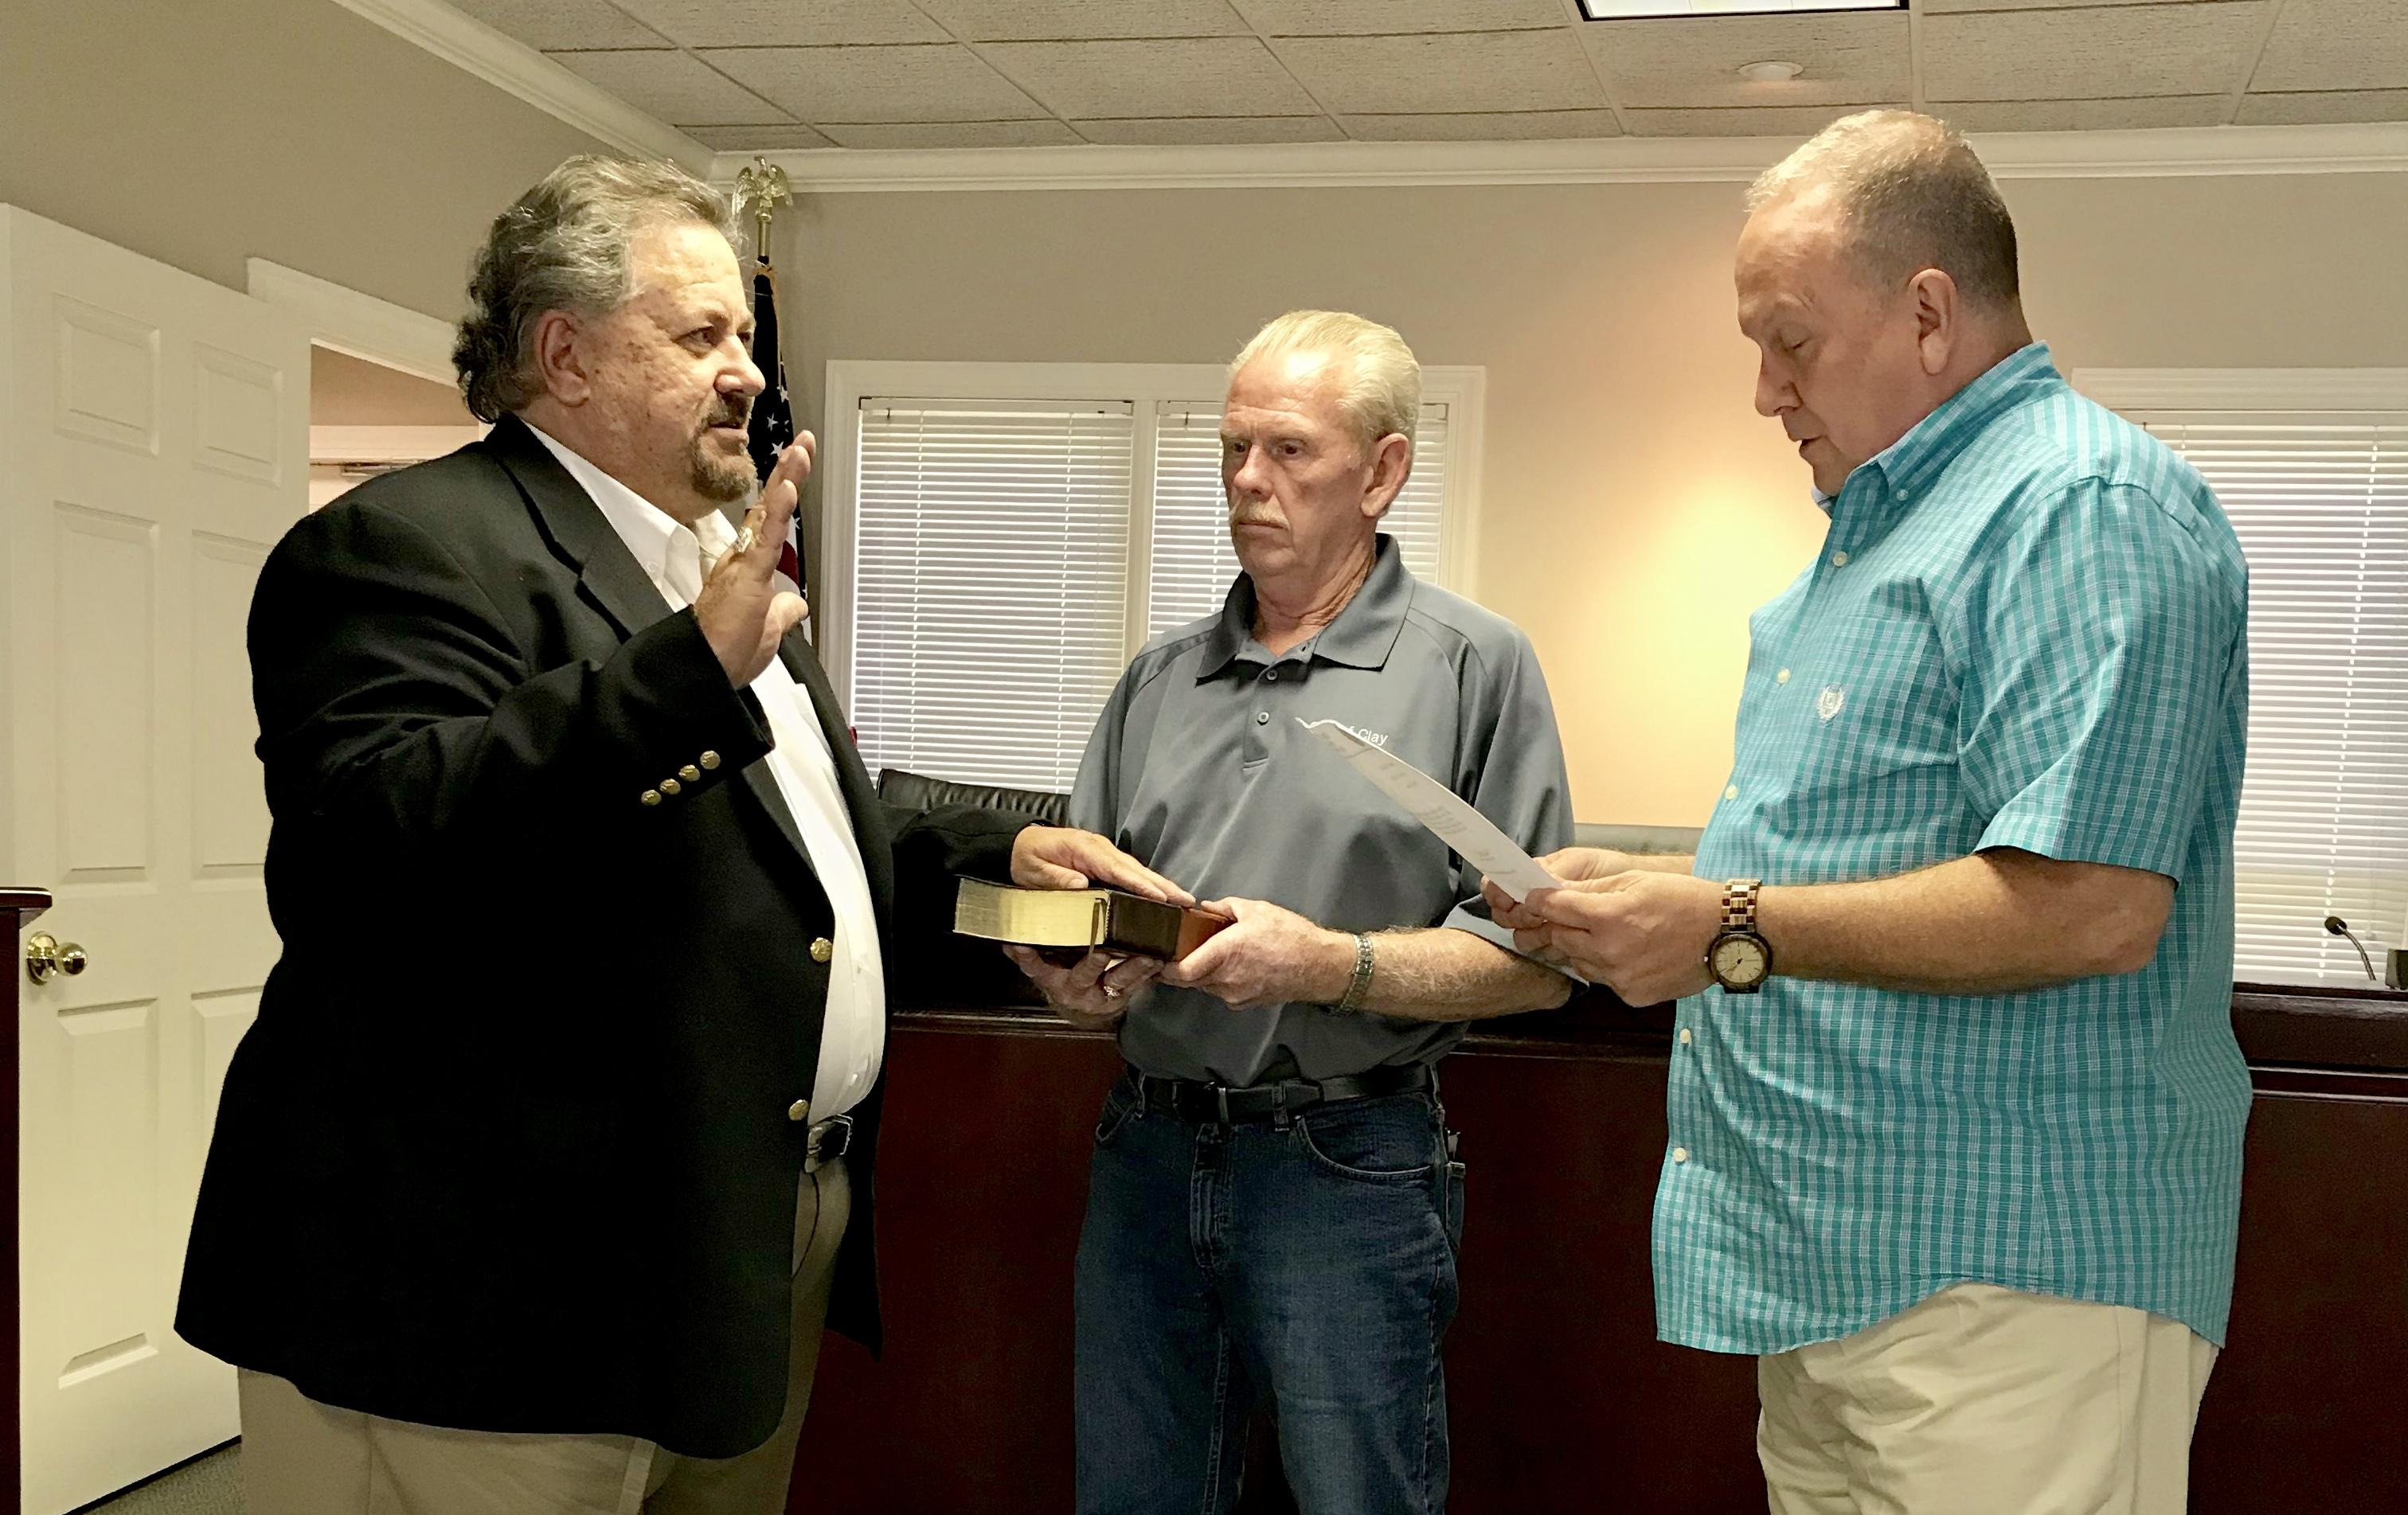 Clay Council swears in new councilor Dean Kirkner